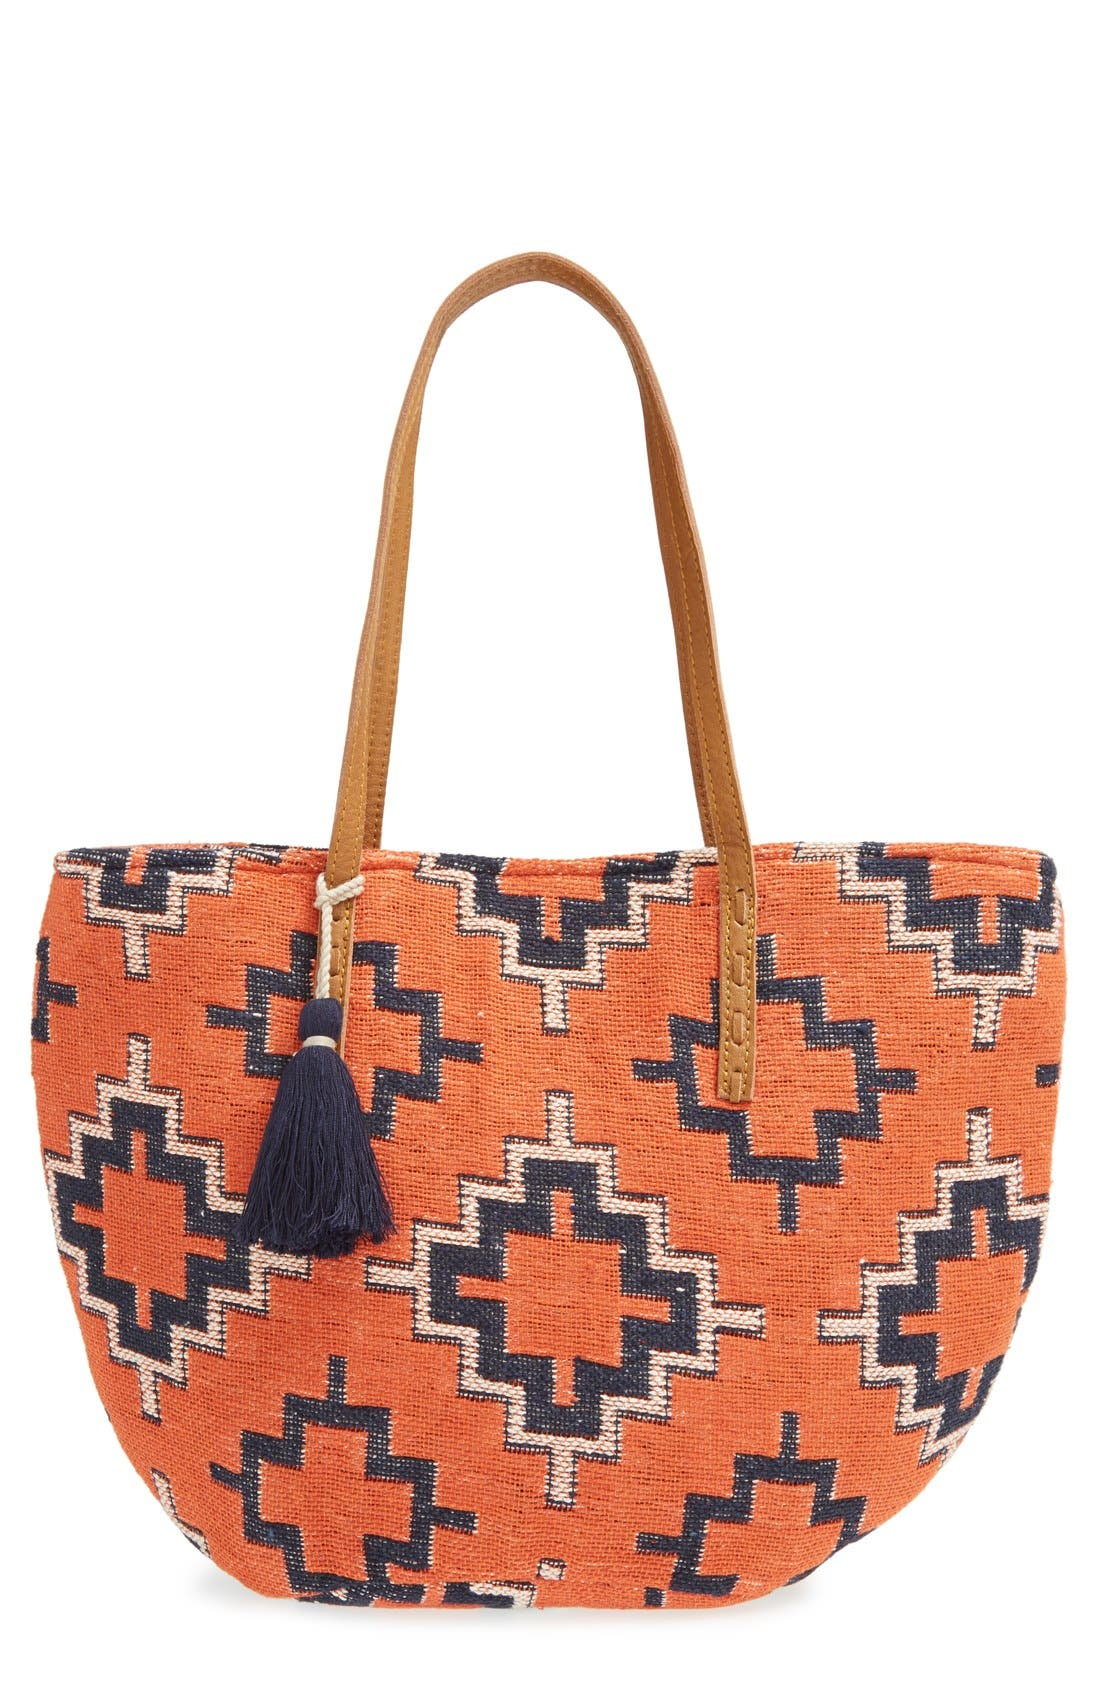 Alternate Image 1 Selected - Sole Society Geometric Canvas Tote